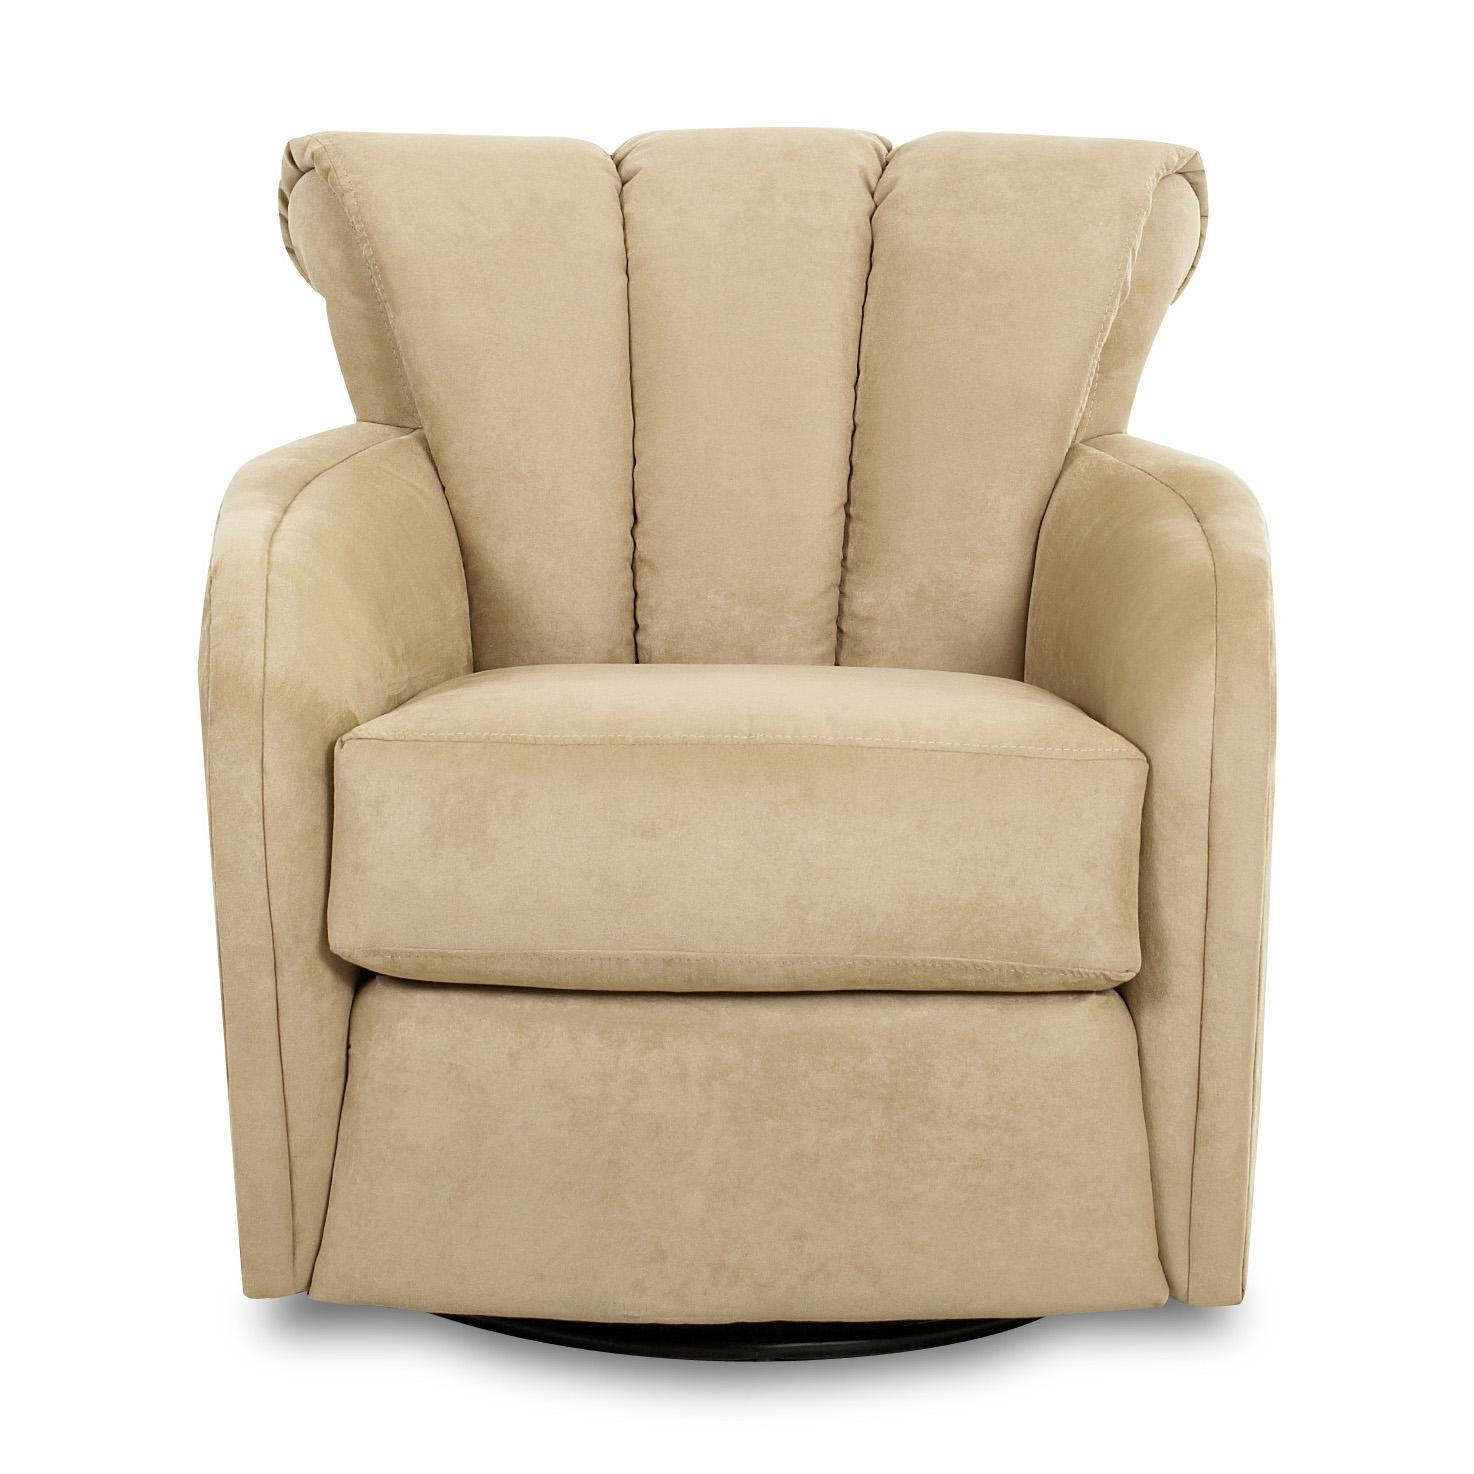 Image of: Design Swivel Accent Chair